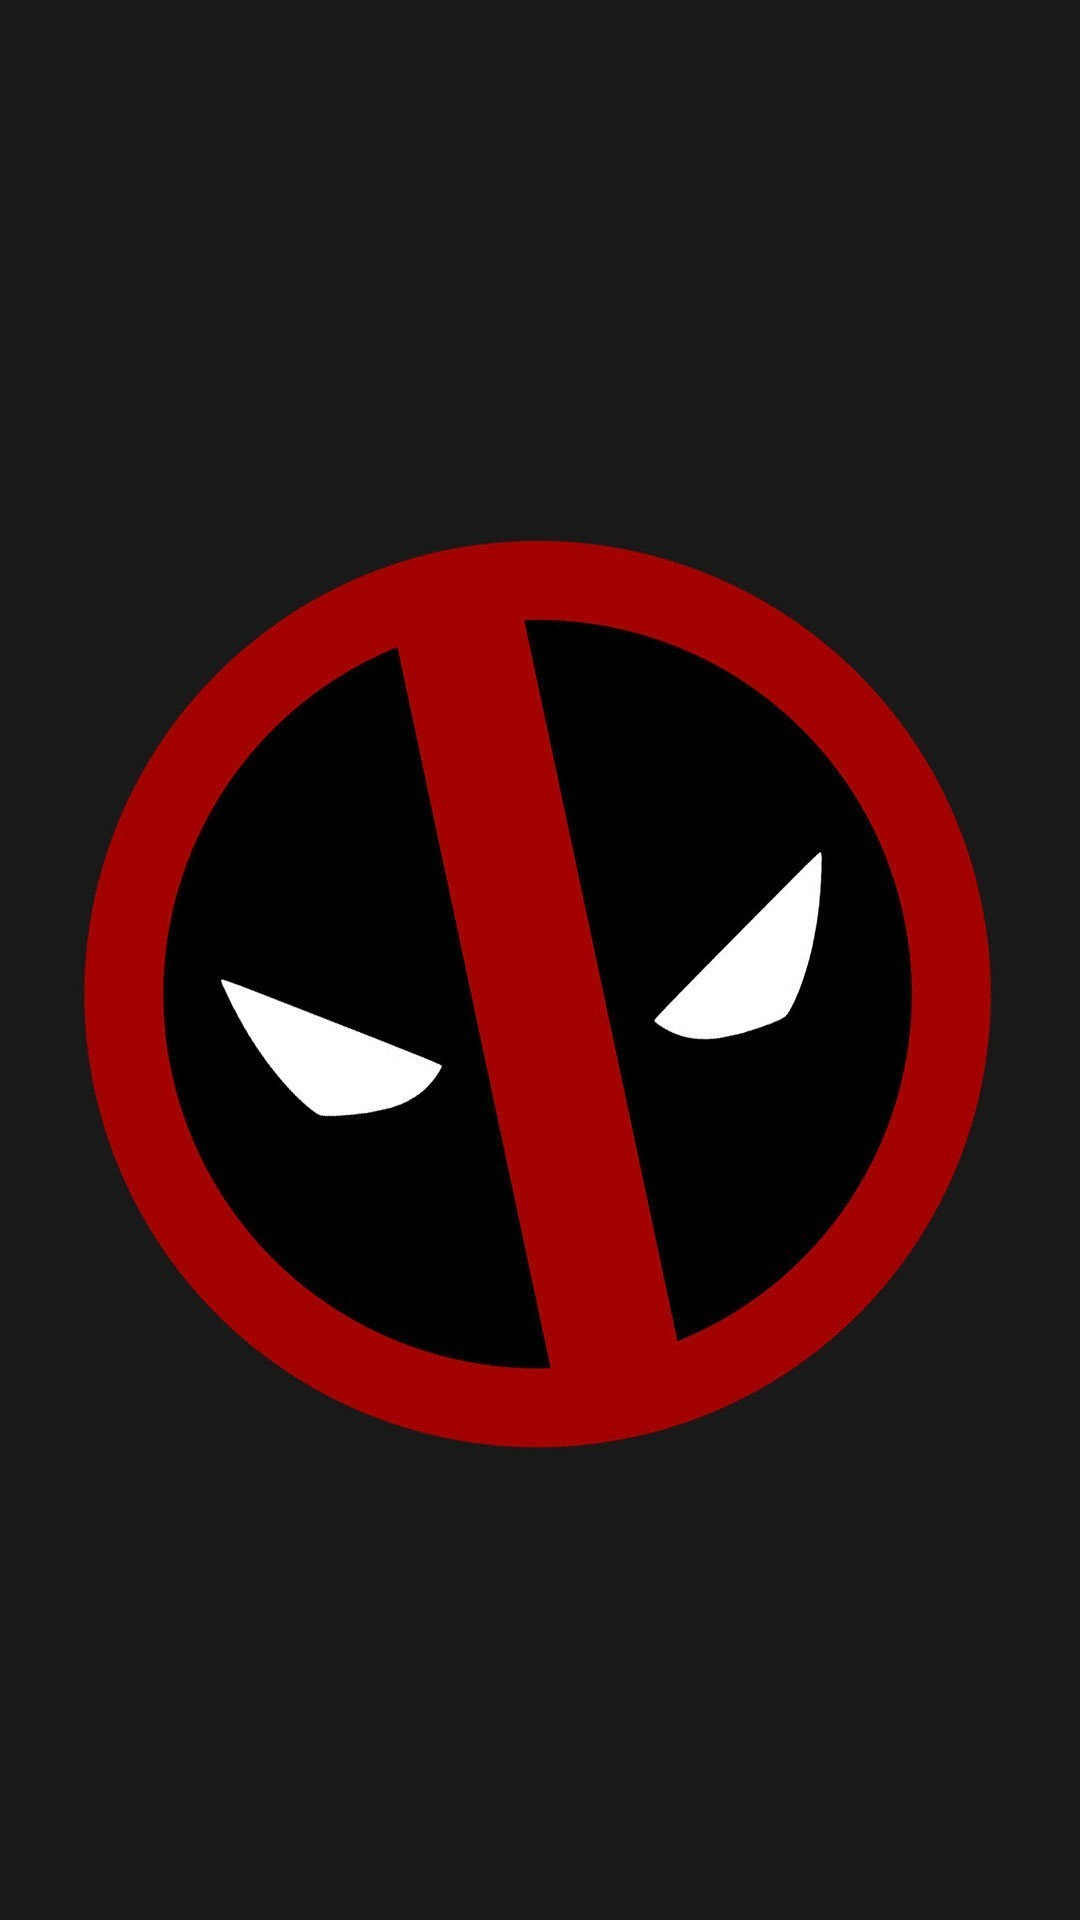 Res: 1080x1920, Deadpool Wallpapers 1080p On HD Wallpaper